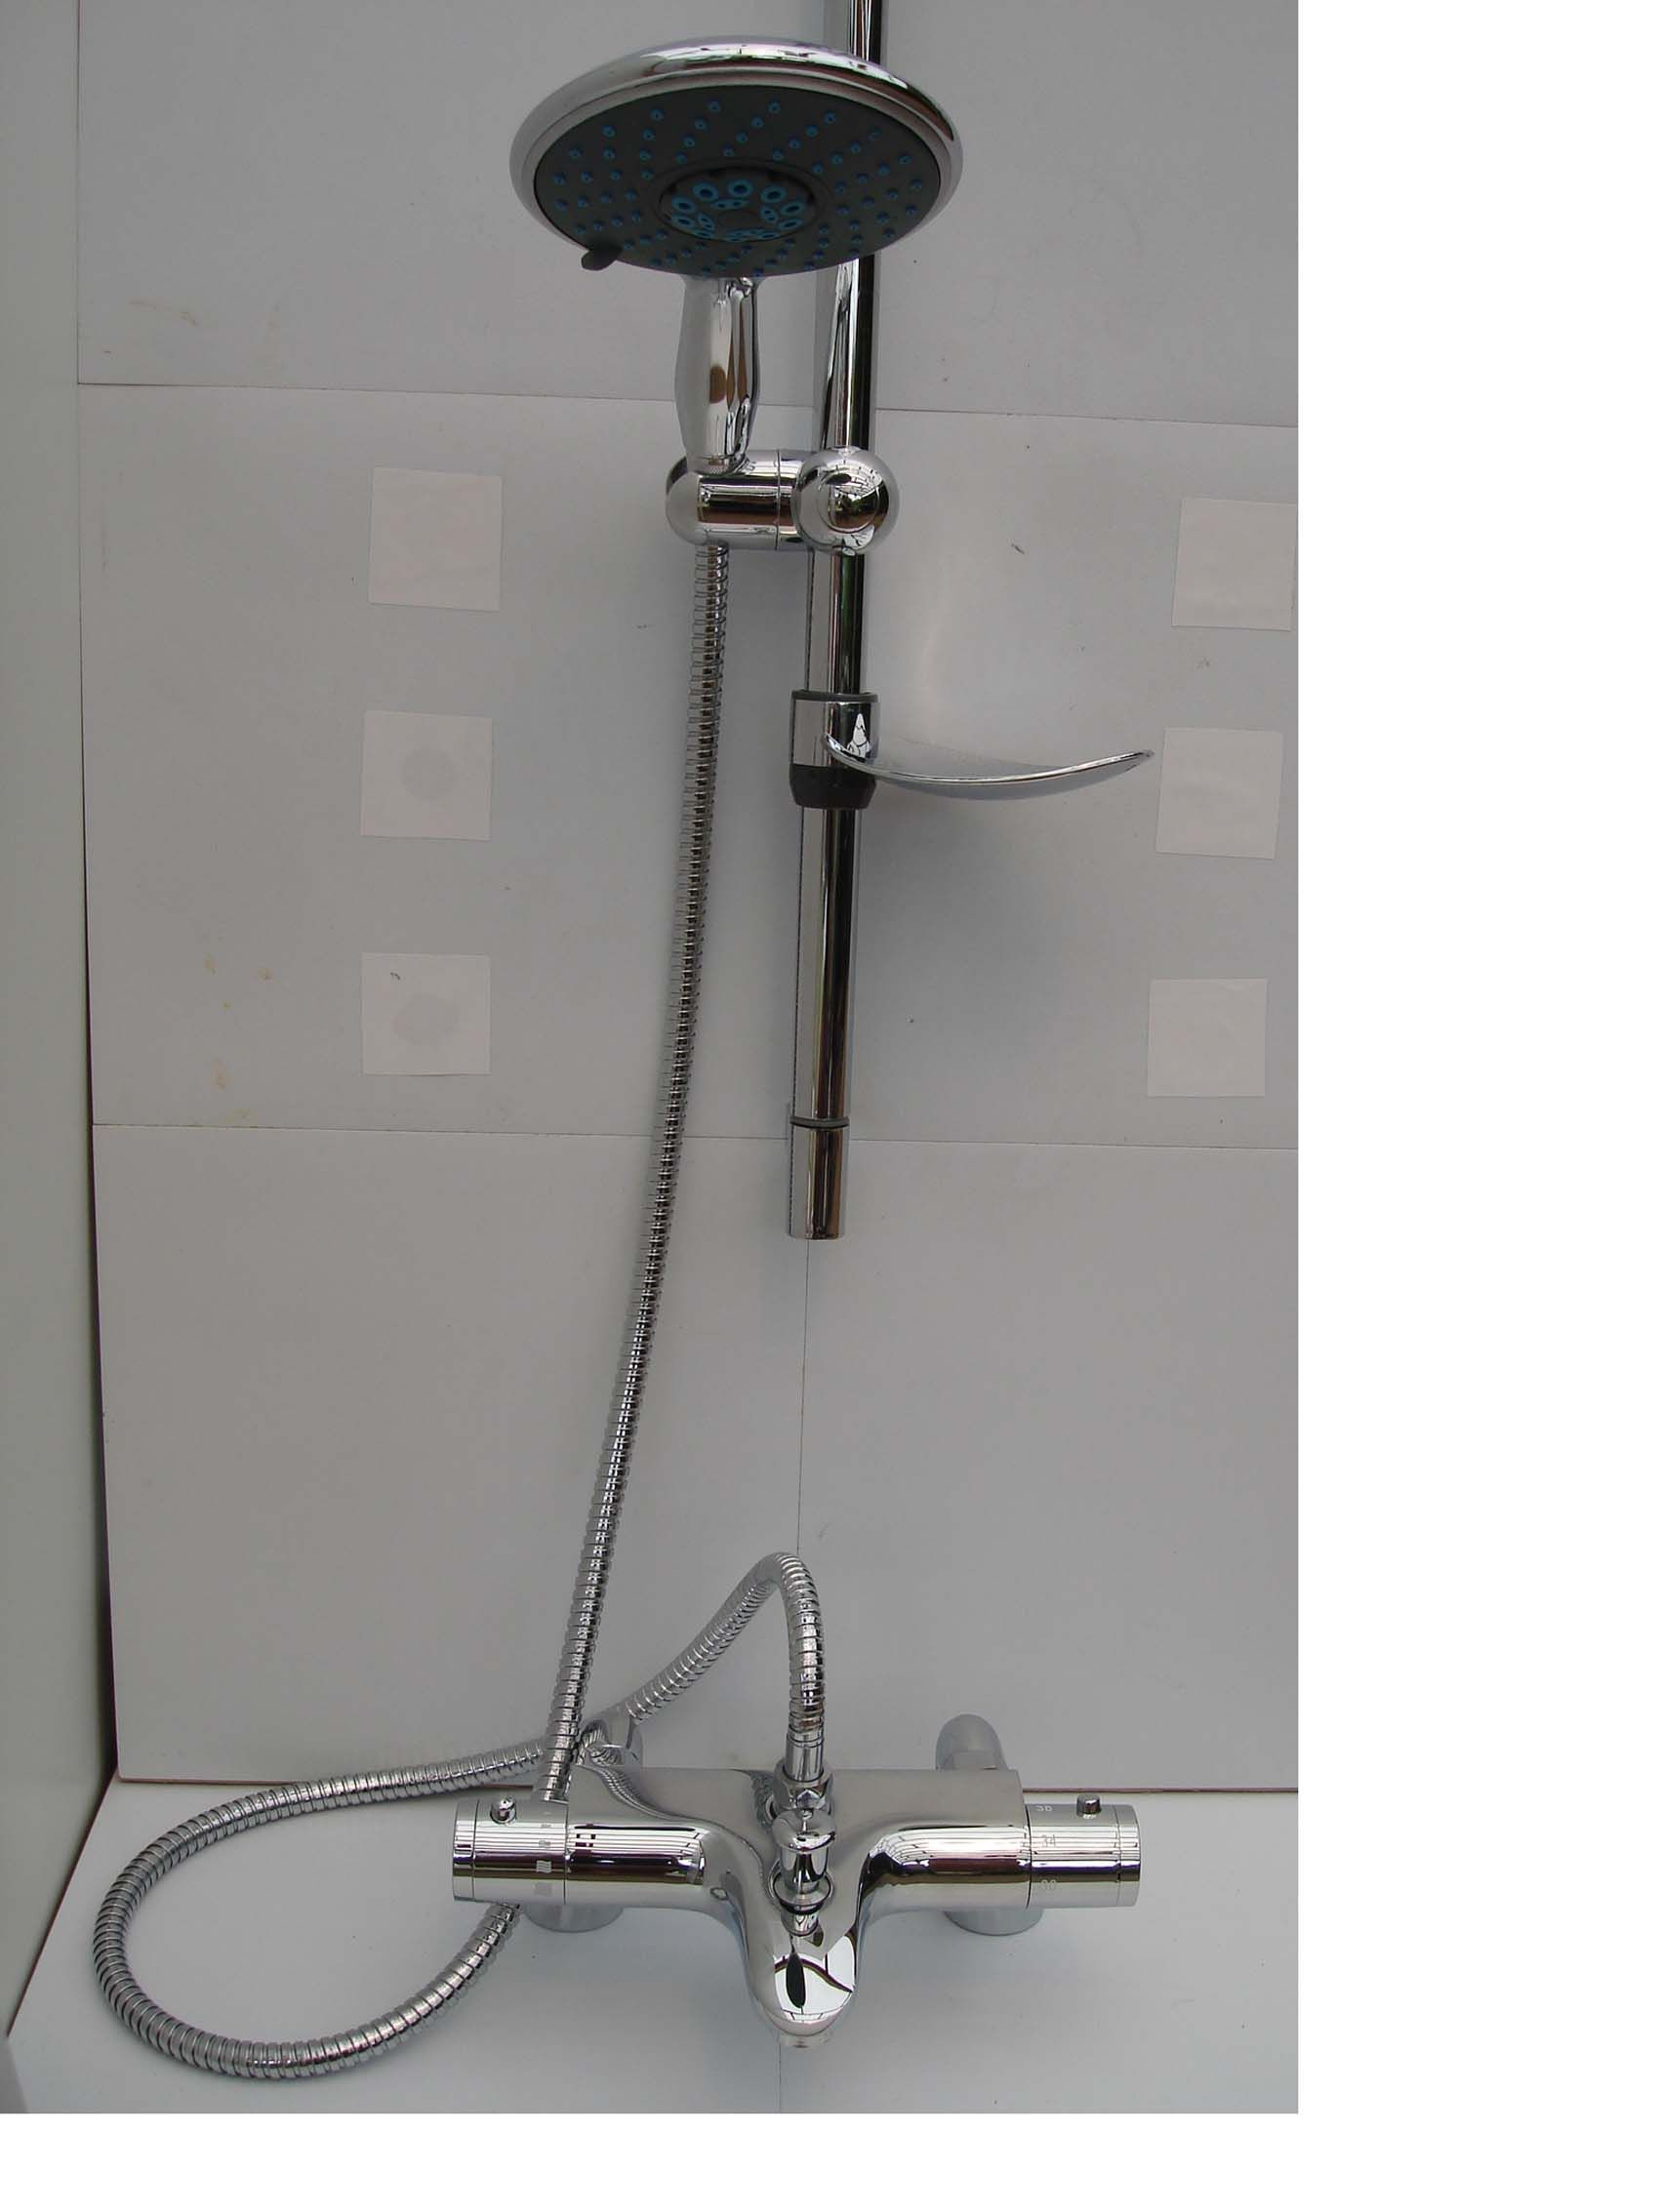 Thermostatic Bath Shower Mixer Taps With Upwards Top Facing Premier Eurostyle Single Lever Tap